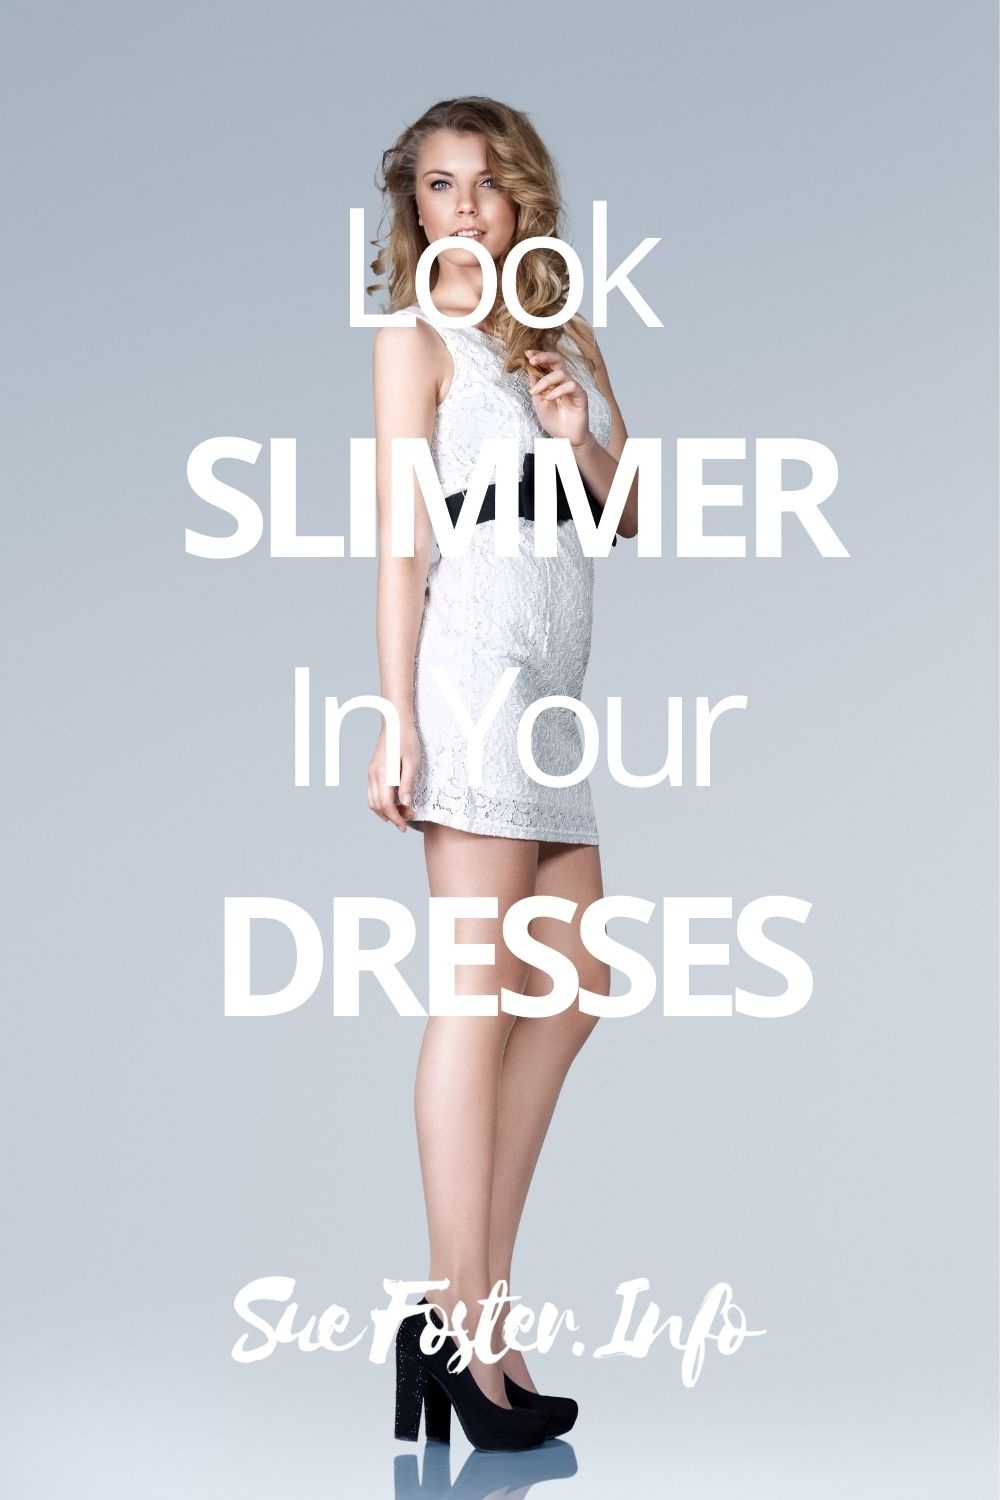 Simple and Effective Ways to Look Slimmer In Your Dresses